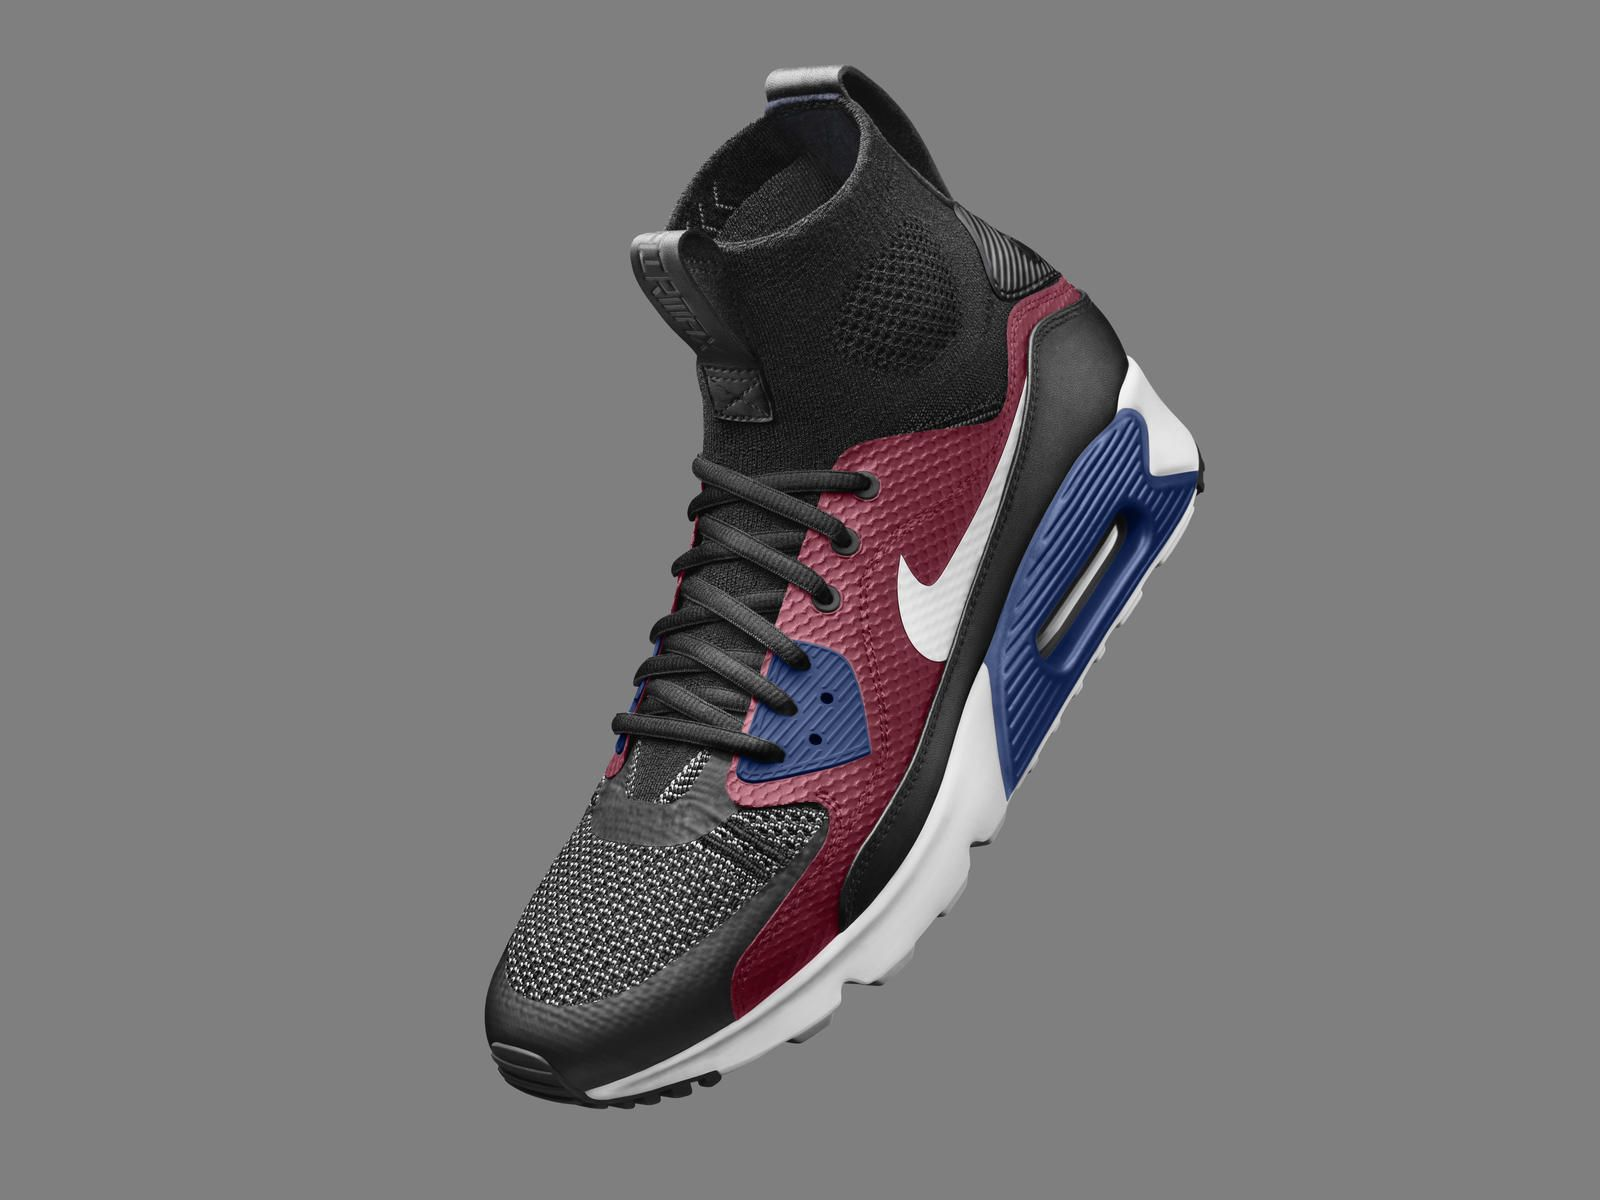 Tinker Hatfield Air Max 90 Thème Ultra Superfly Offre magasin rabais exclusif bKV48Fgvey